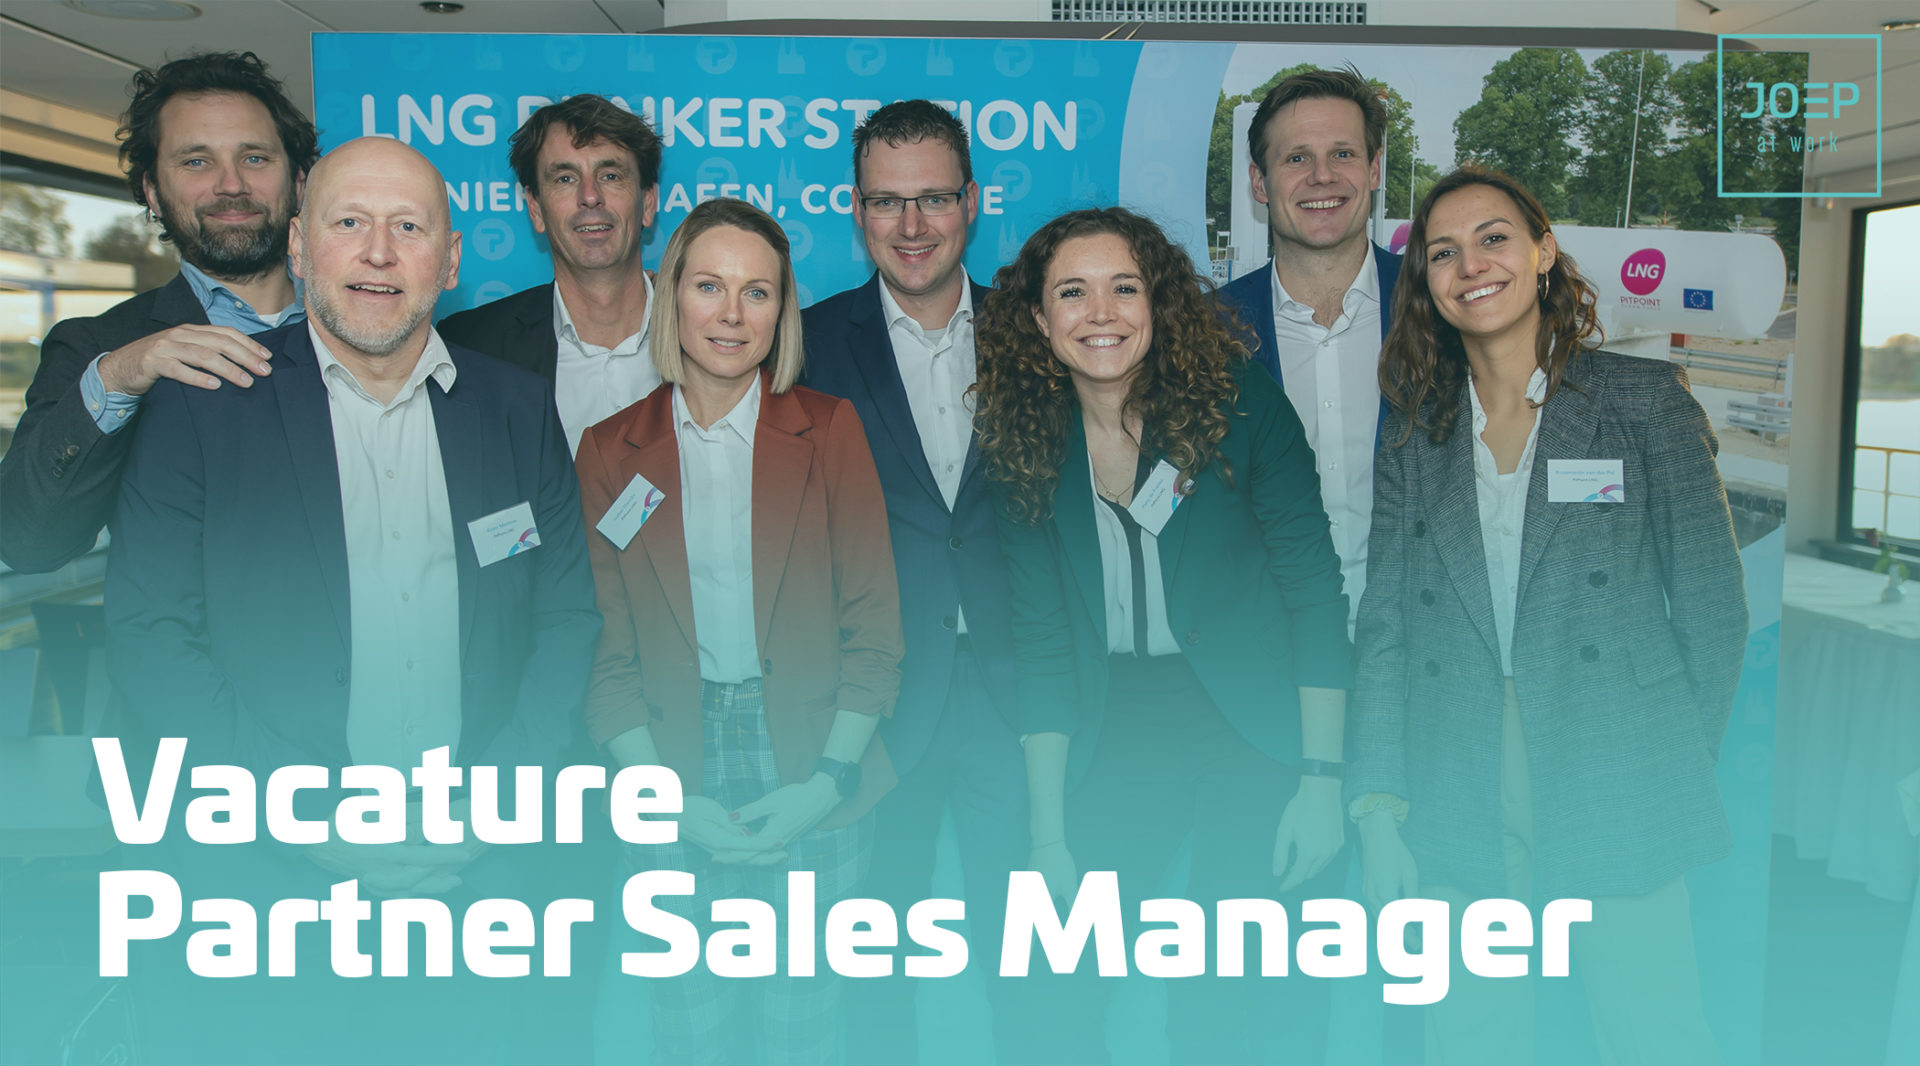 Vacature Partner Sales Manager